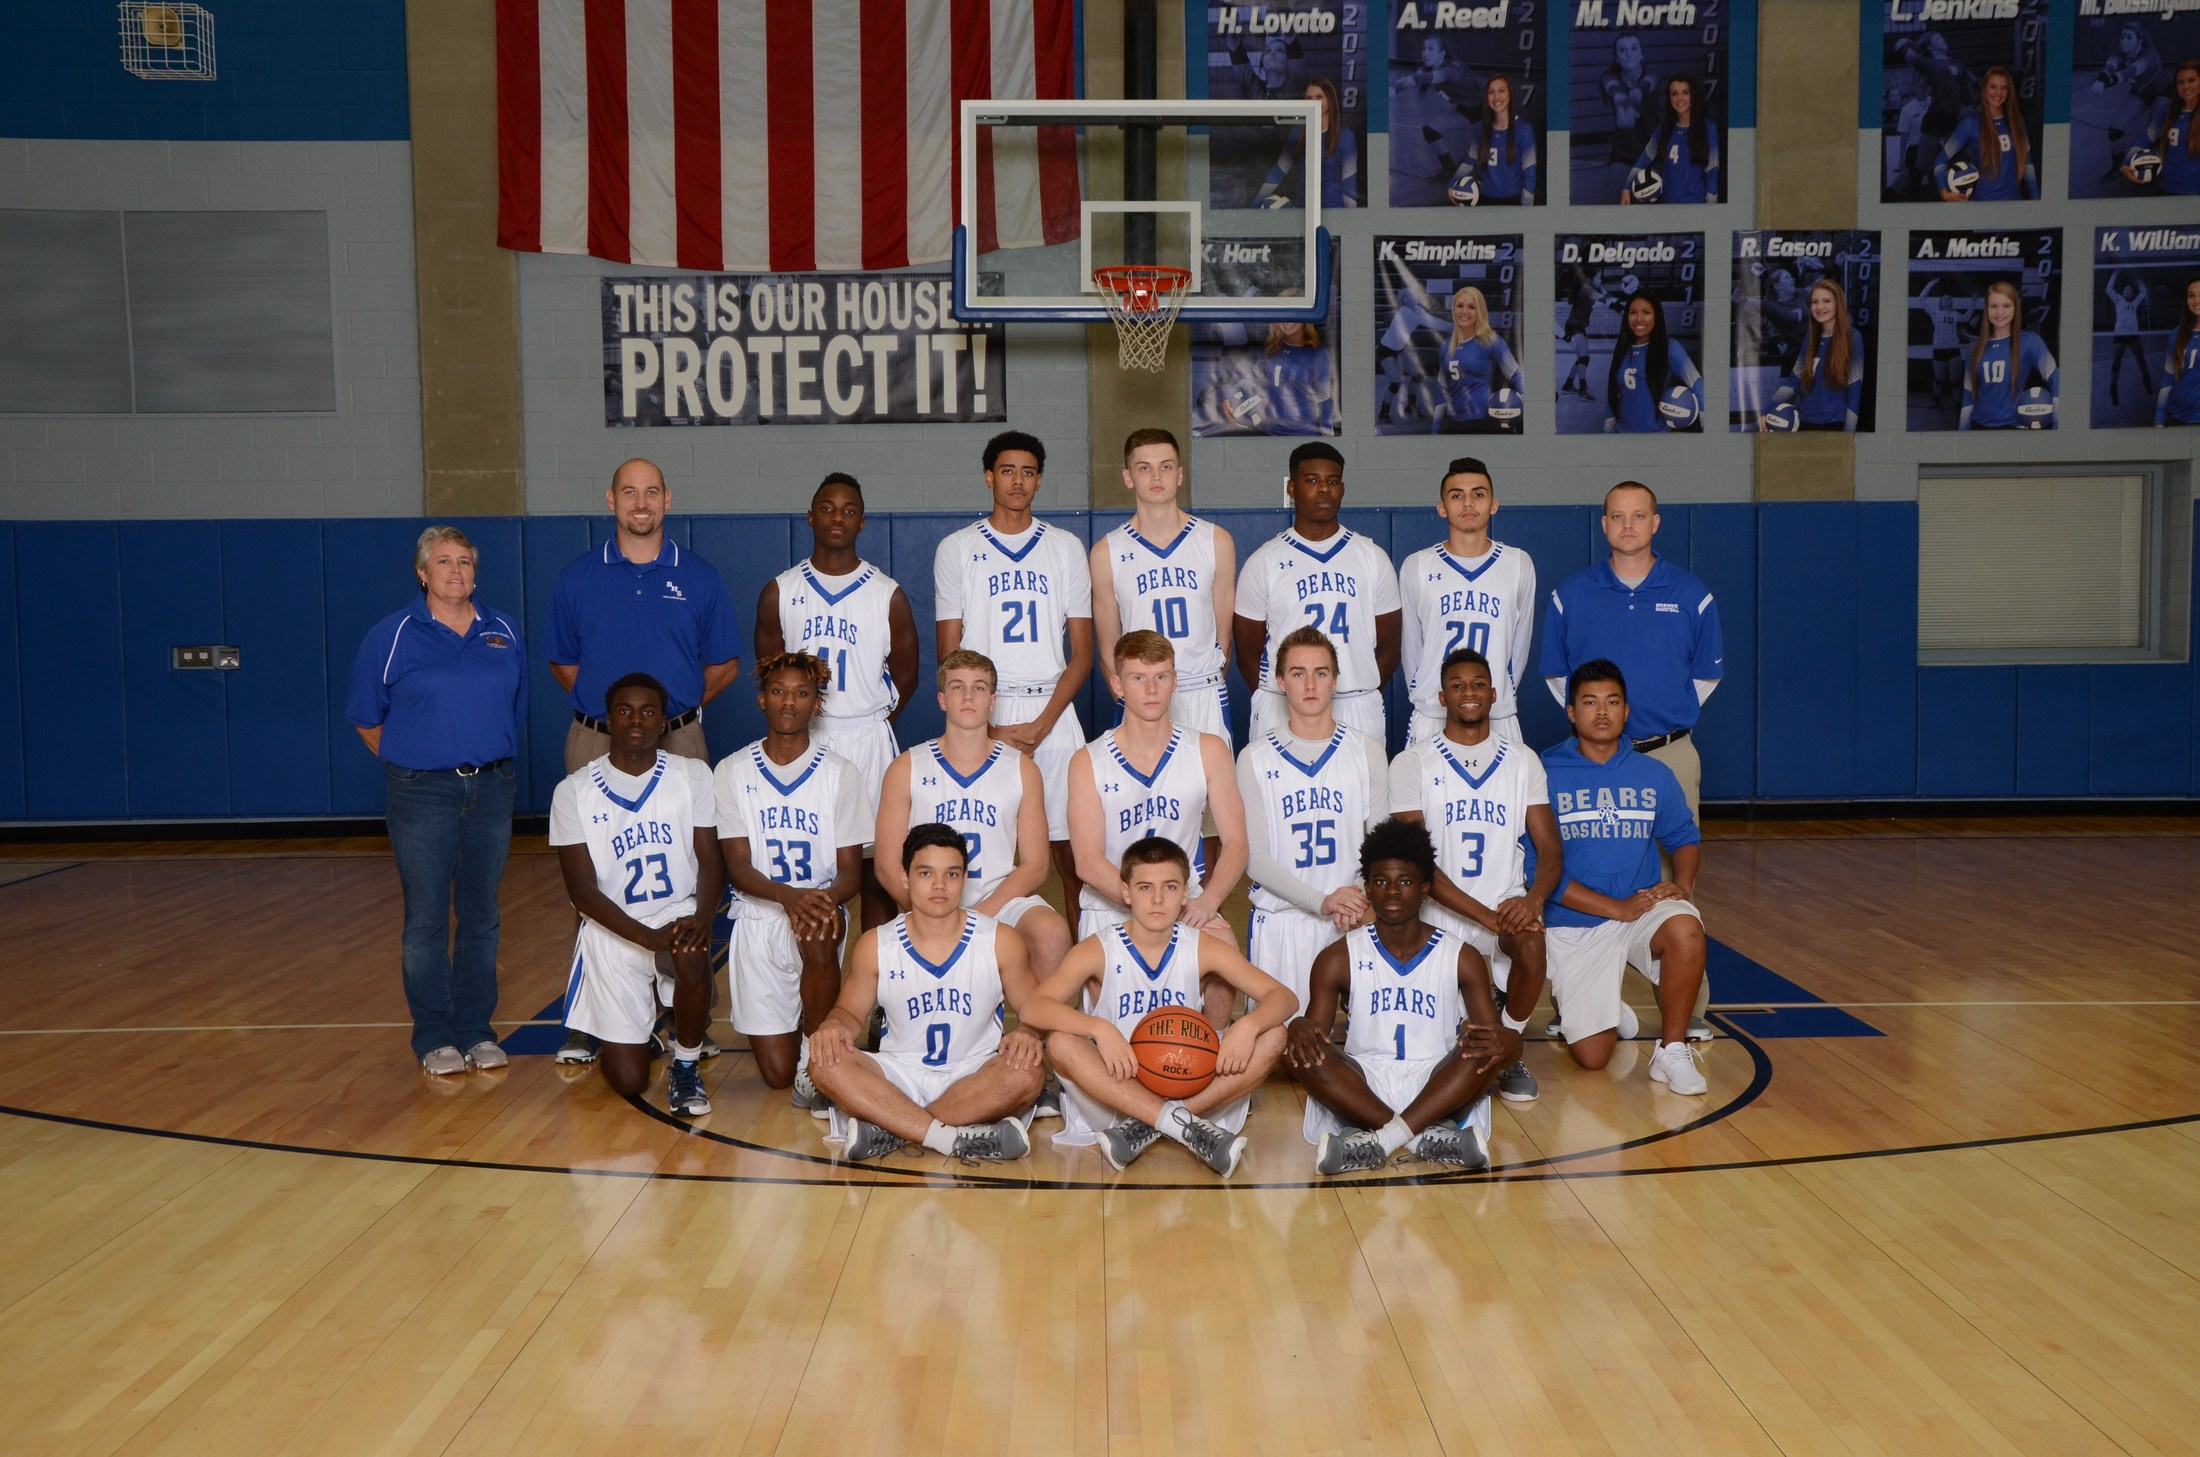 Boys' Varsity Basketball Team